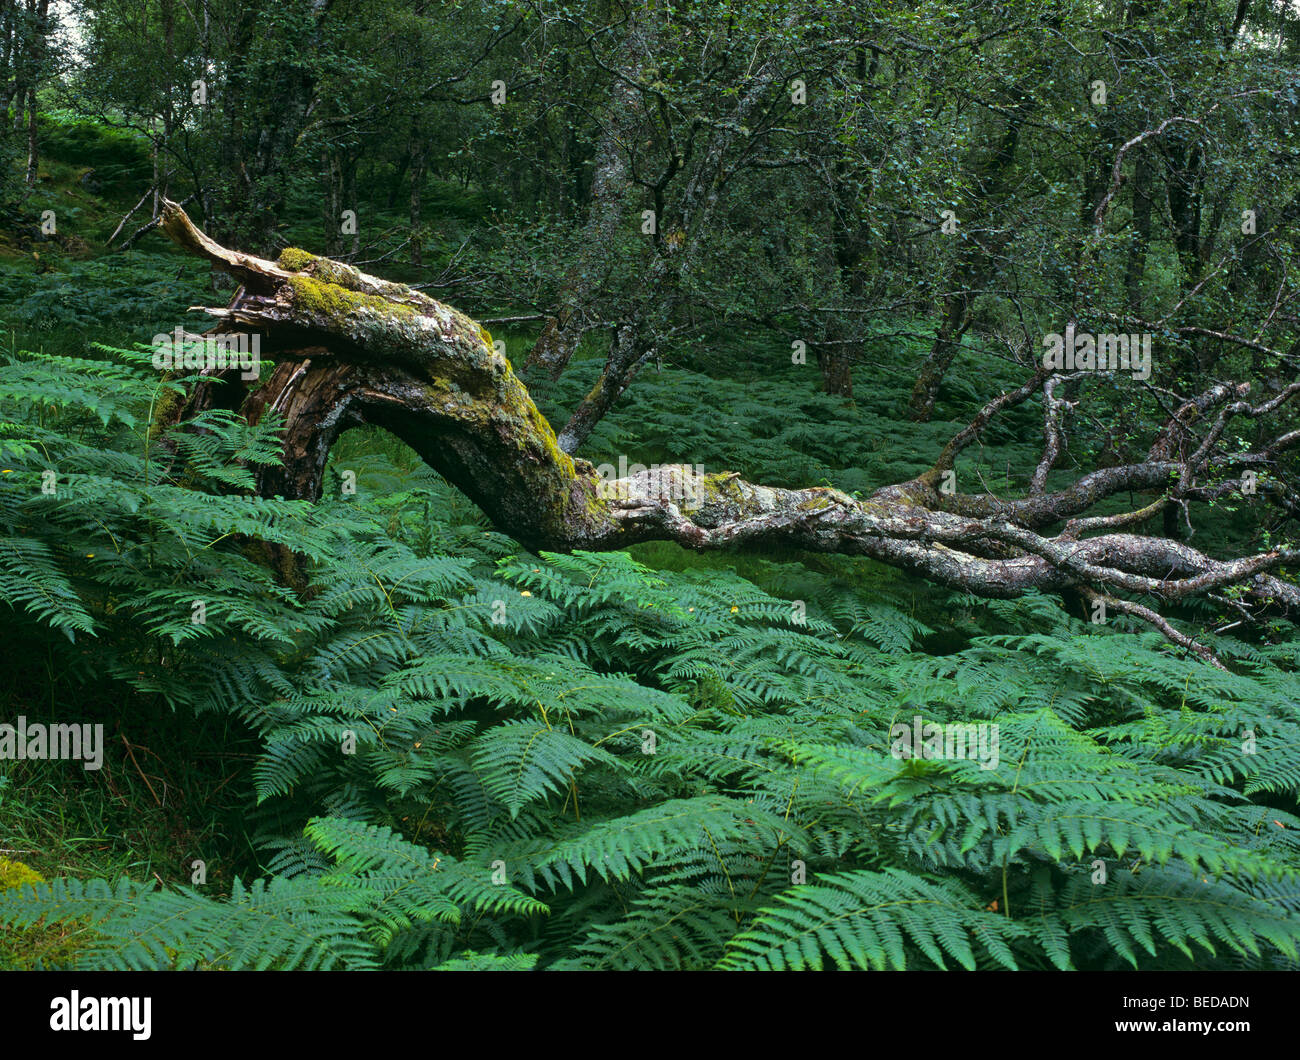 Fallen tree and ferns in an alder forest, Scotland, United Kingdom, Europe - Stock Image